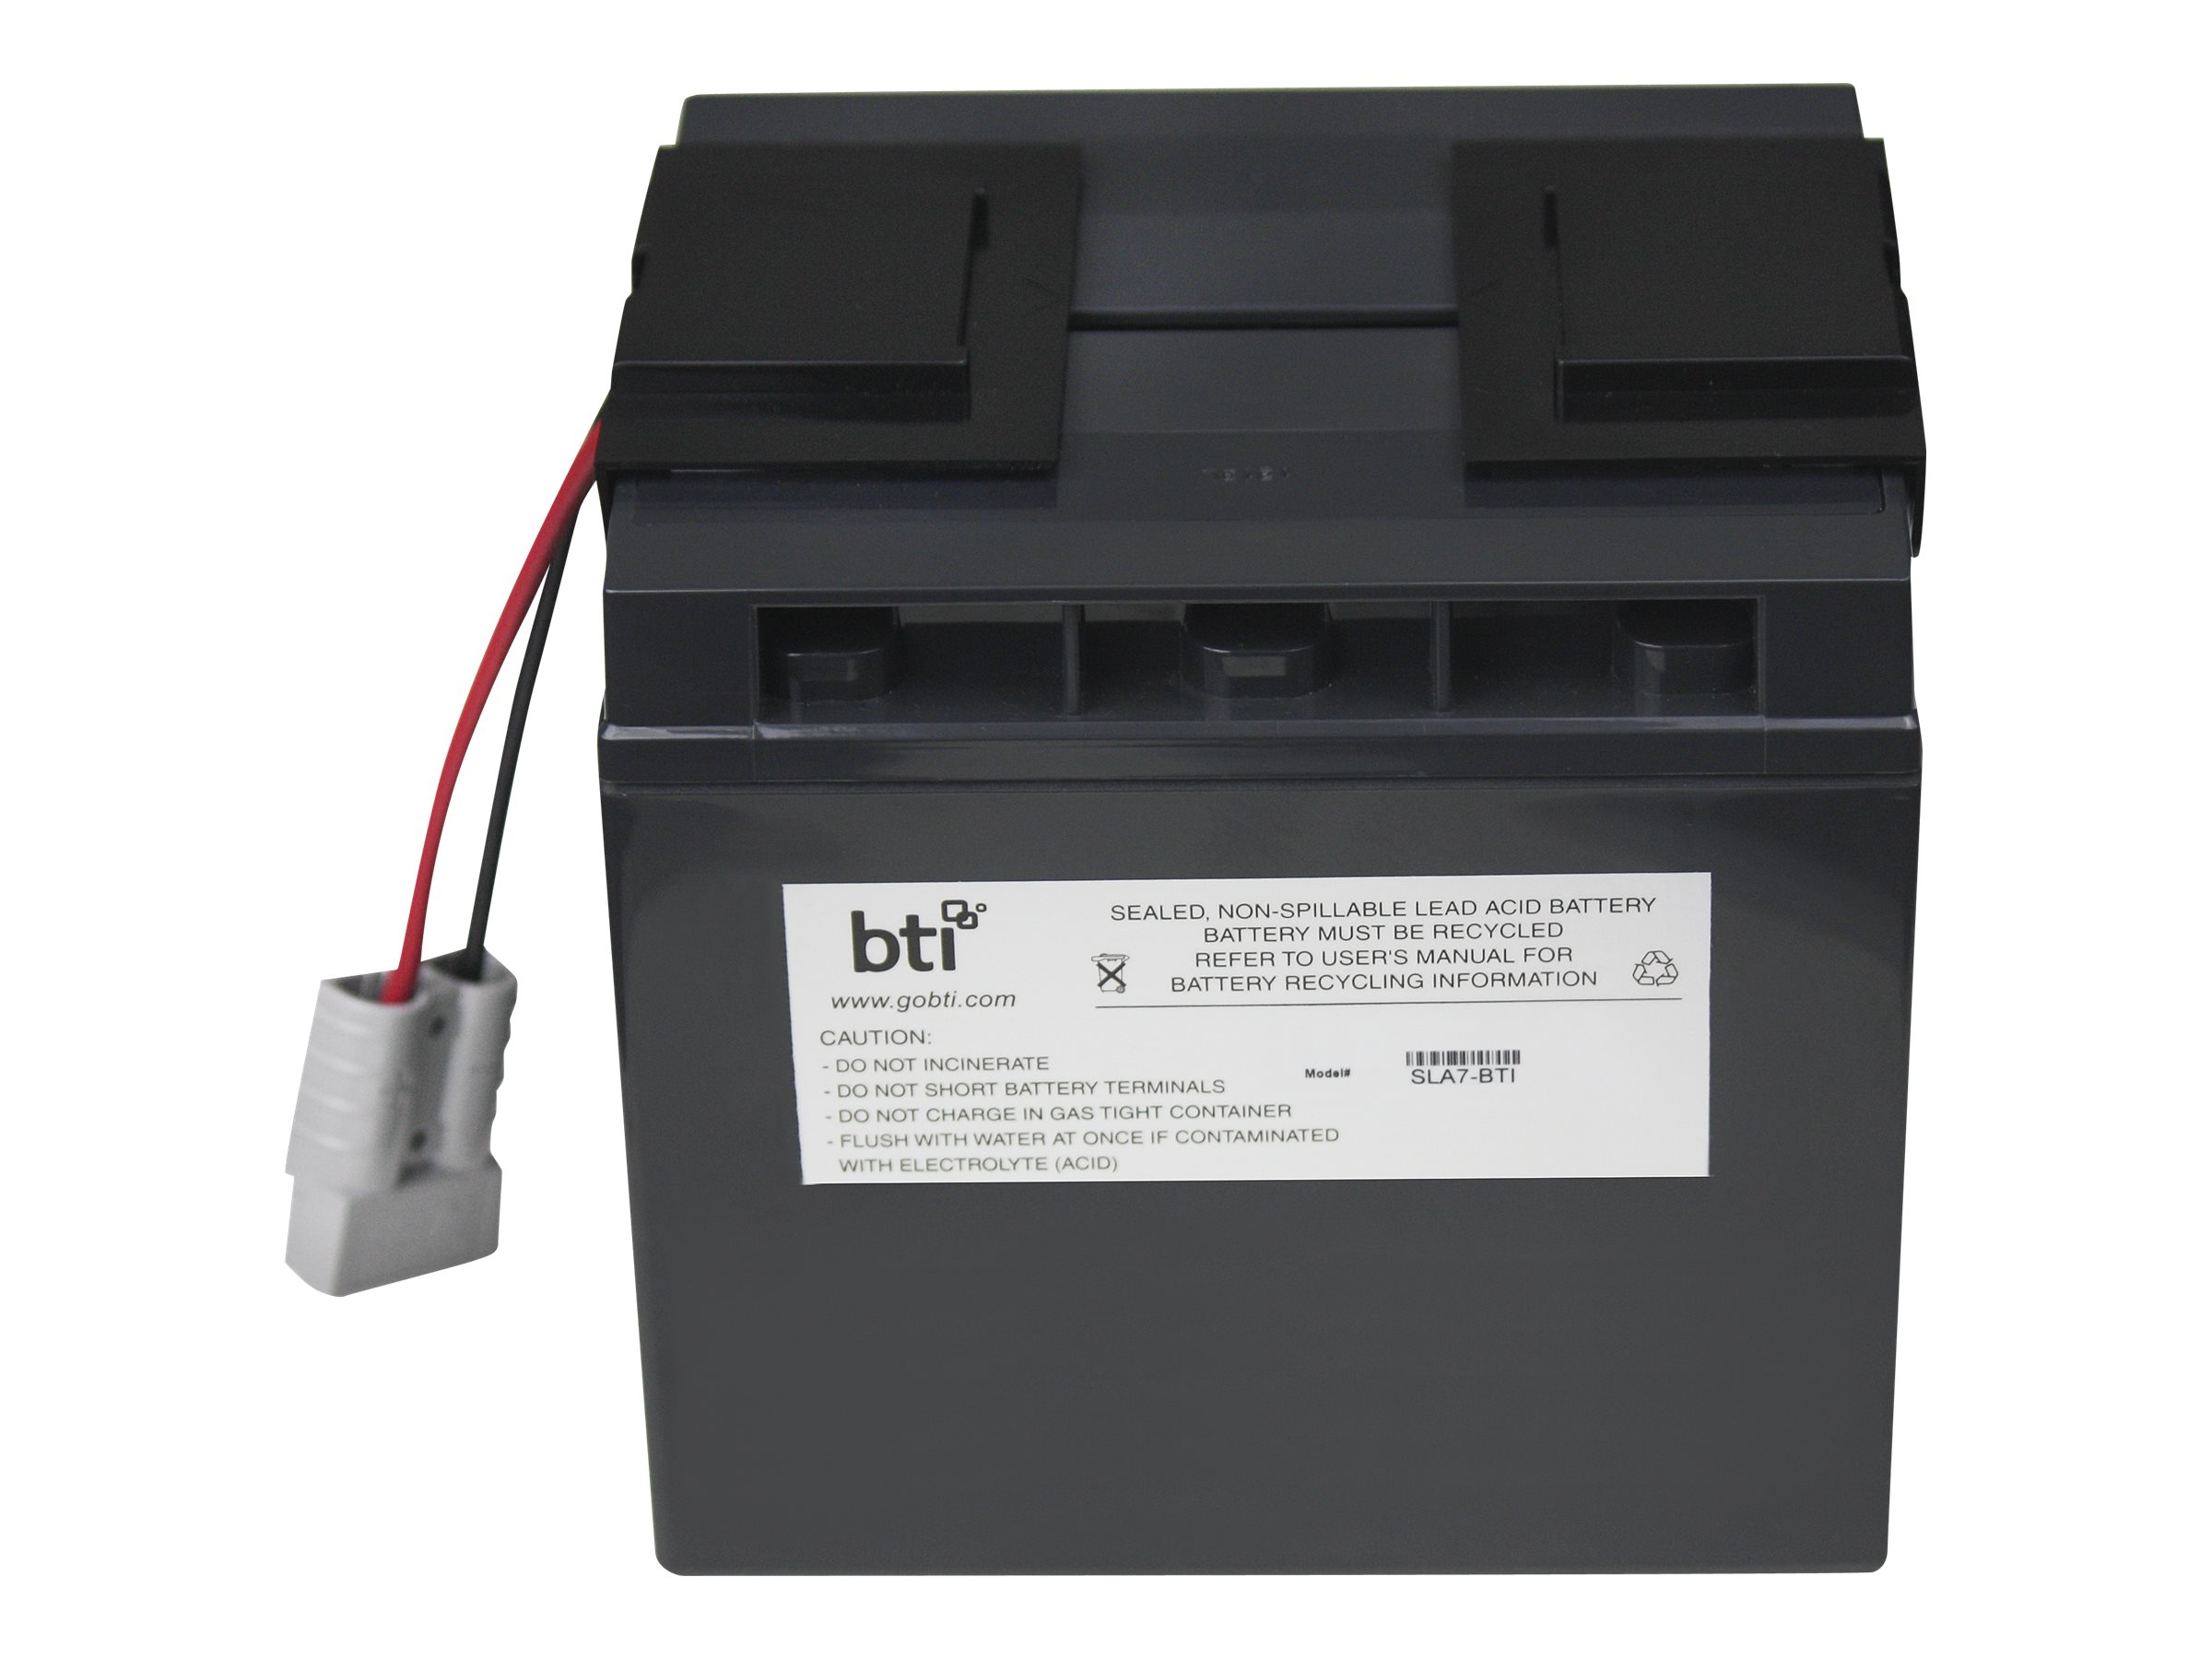 BTI Replacement Battery, RBC7, for APC SU700XL, SU1000XL, BP1400, SU1400 Models, RBC7-SLA7-BTI